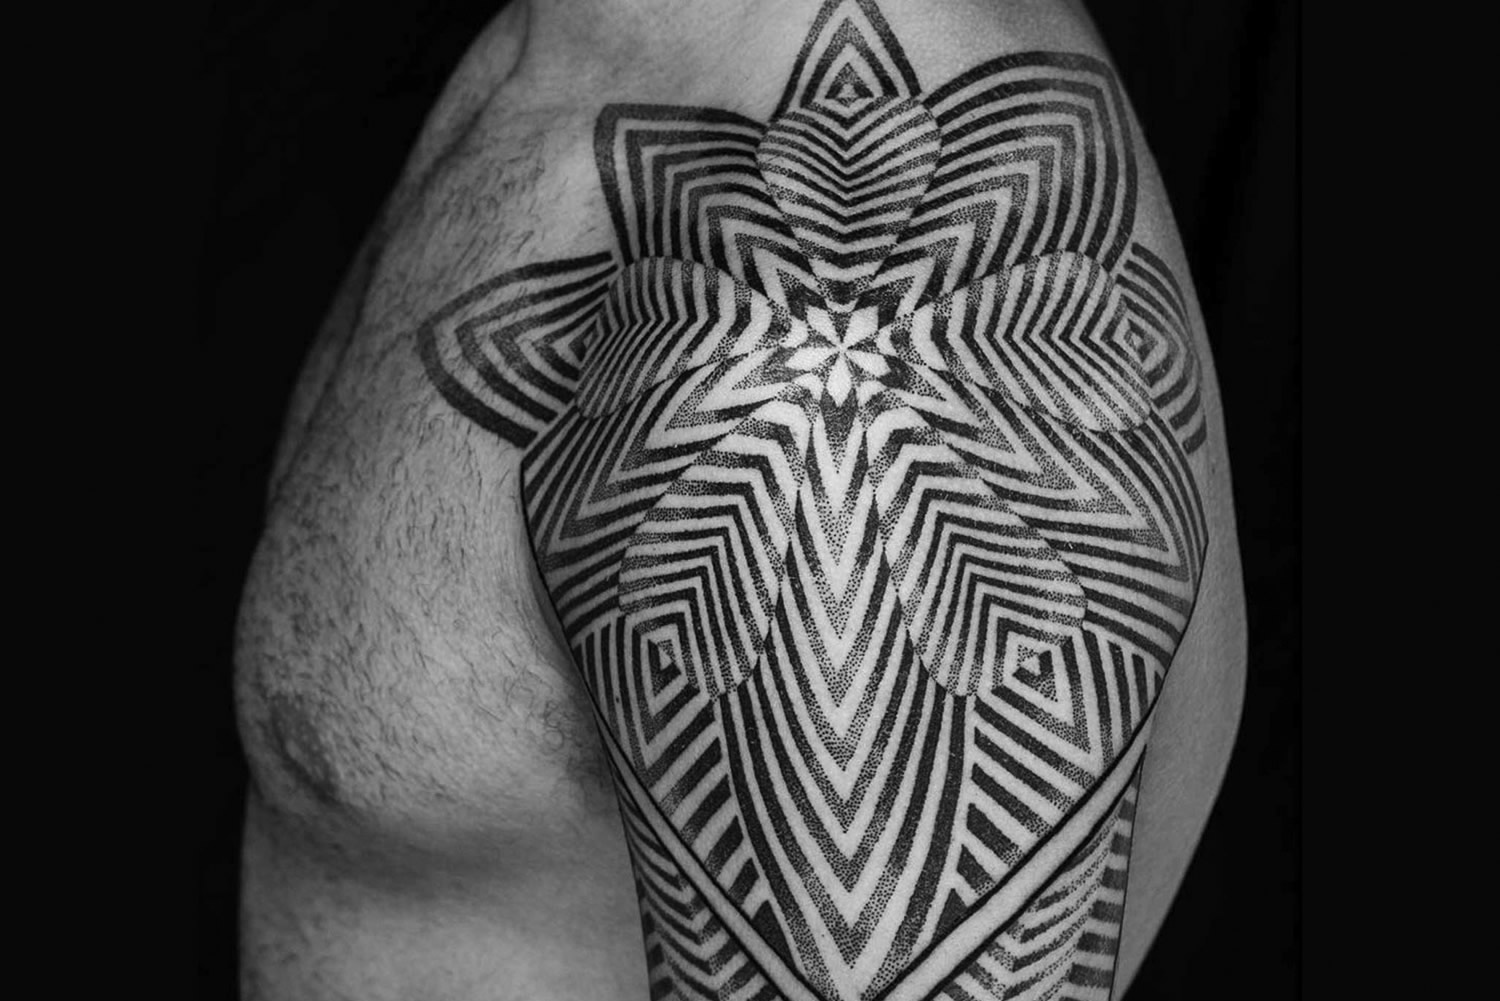 optical illusion, motion illusion tattoo by Lewis Ink